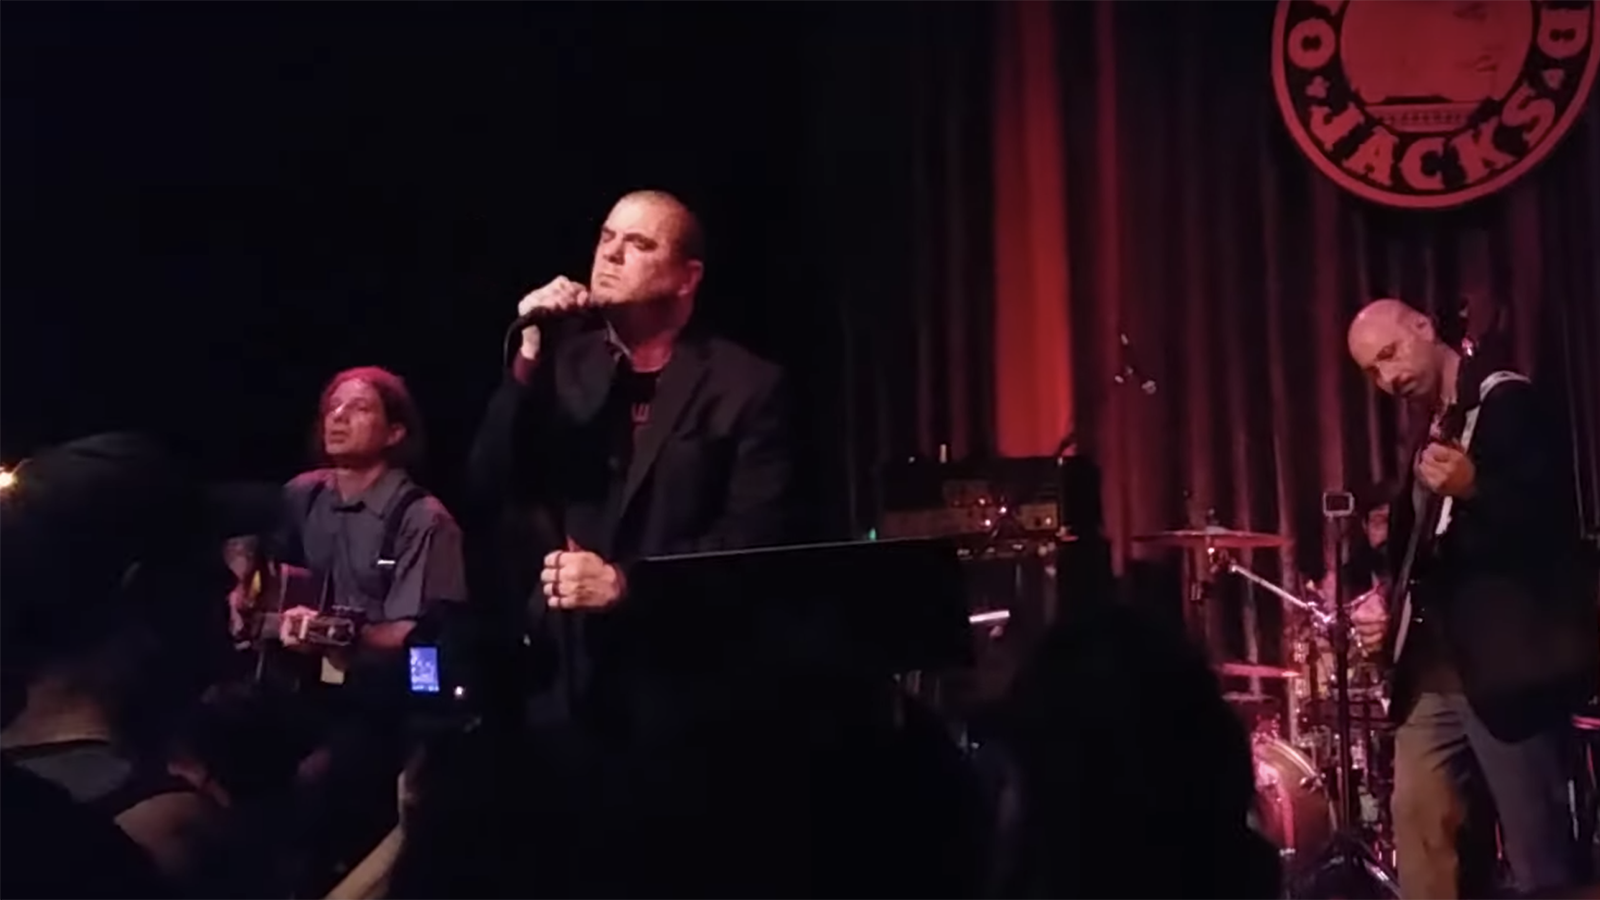 See Philip Anselmo's New Band En Minor Play First Show Ever in New Orleans